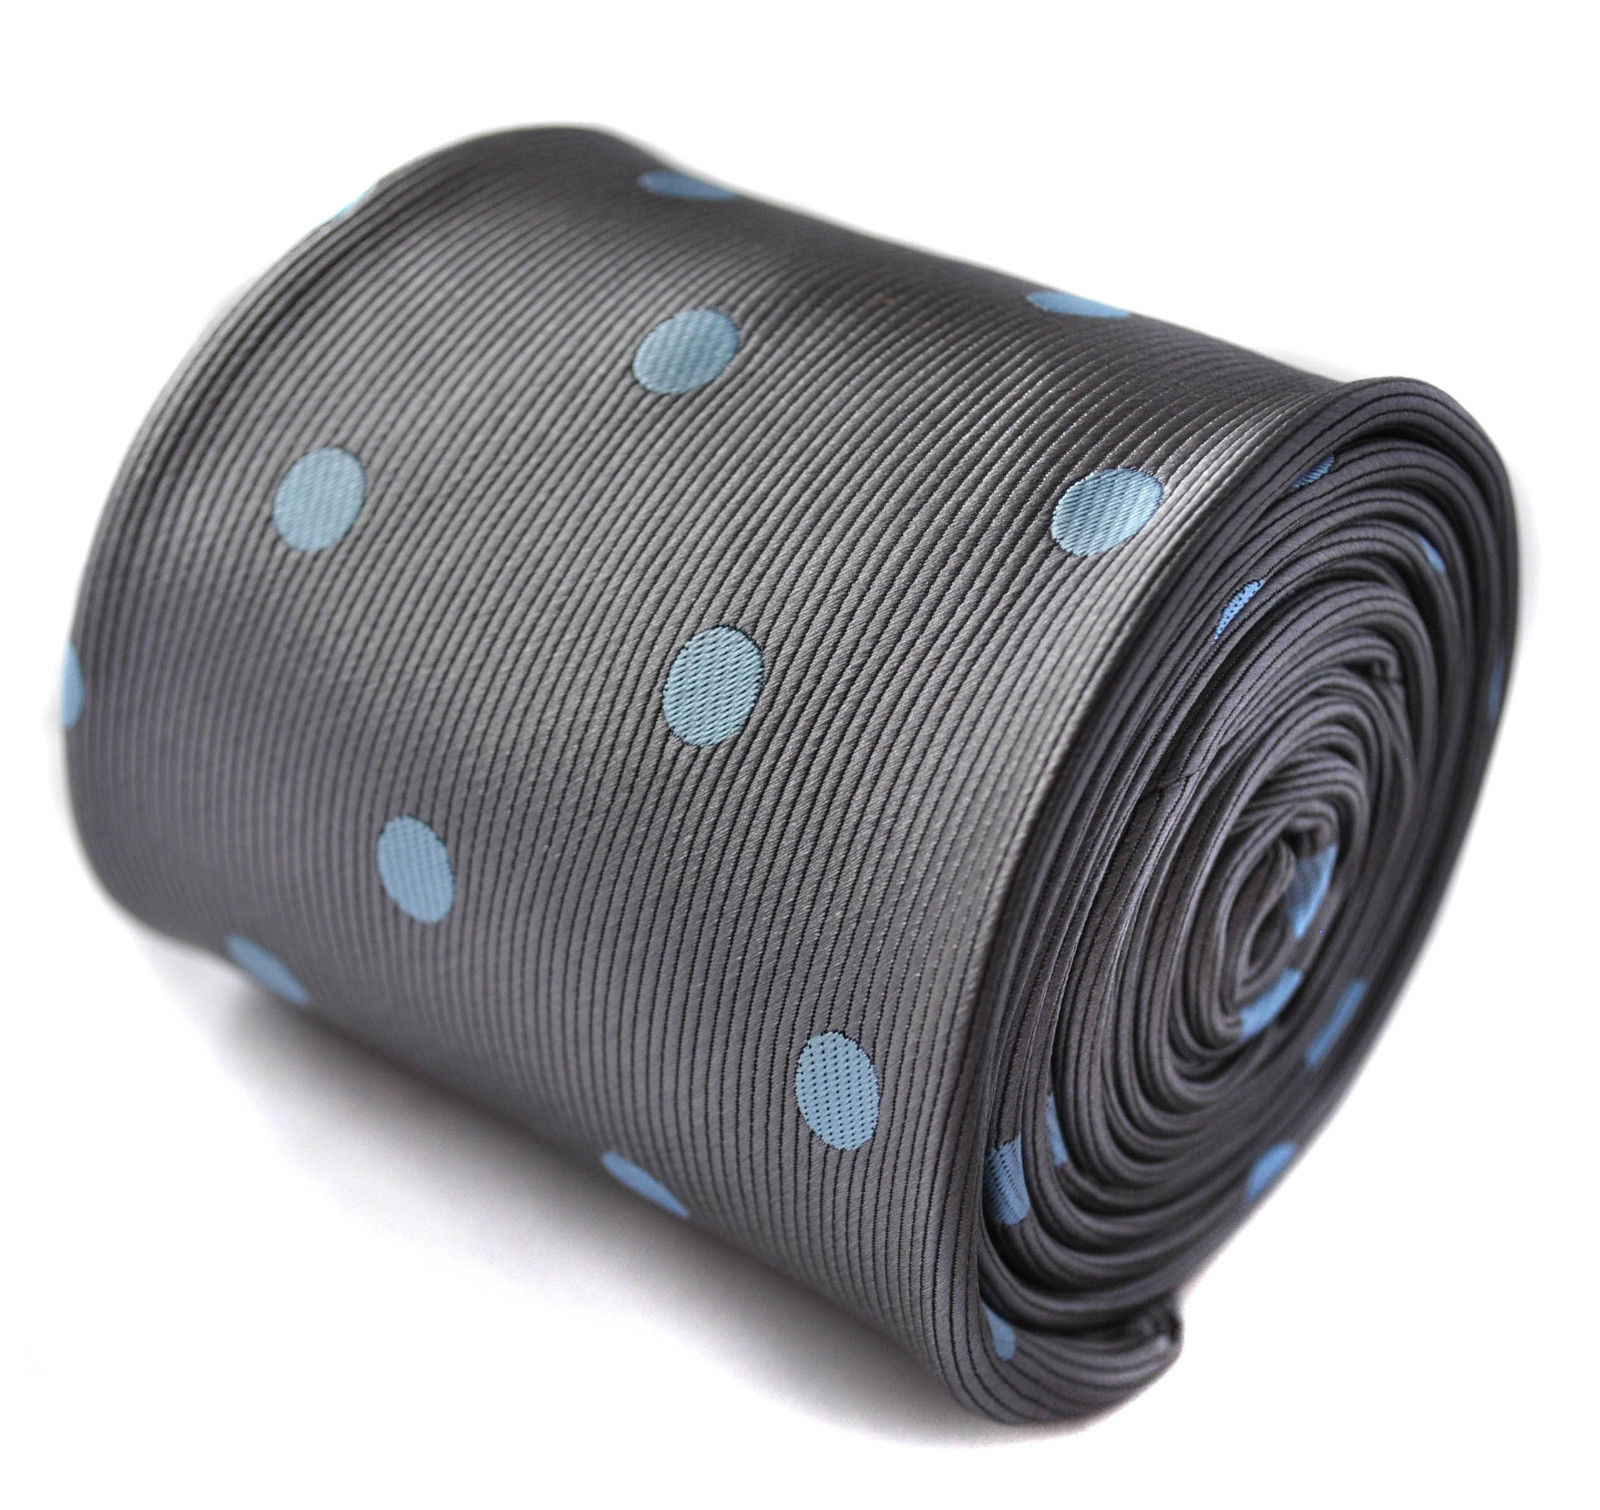 Frederick Thomas Designer Mens Tie - Silver Grey - Light Baby Blue Polka Dot